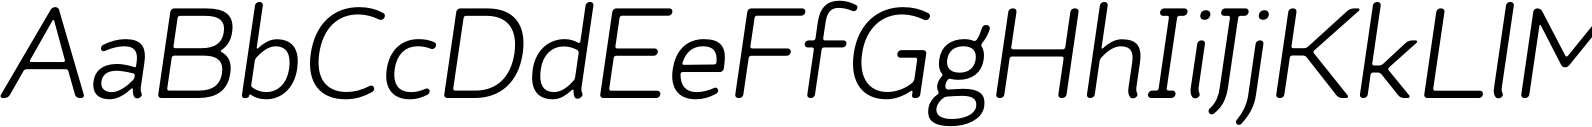 Kahlo Rounded Bold Essential Italic